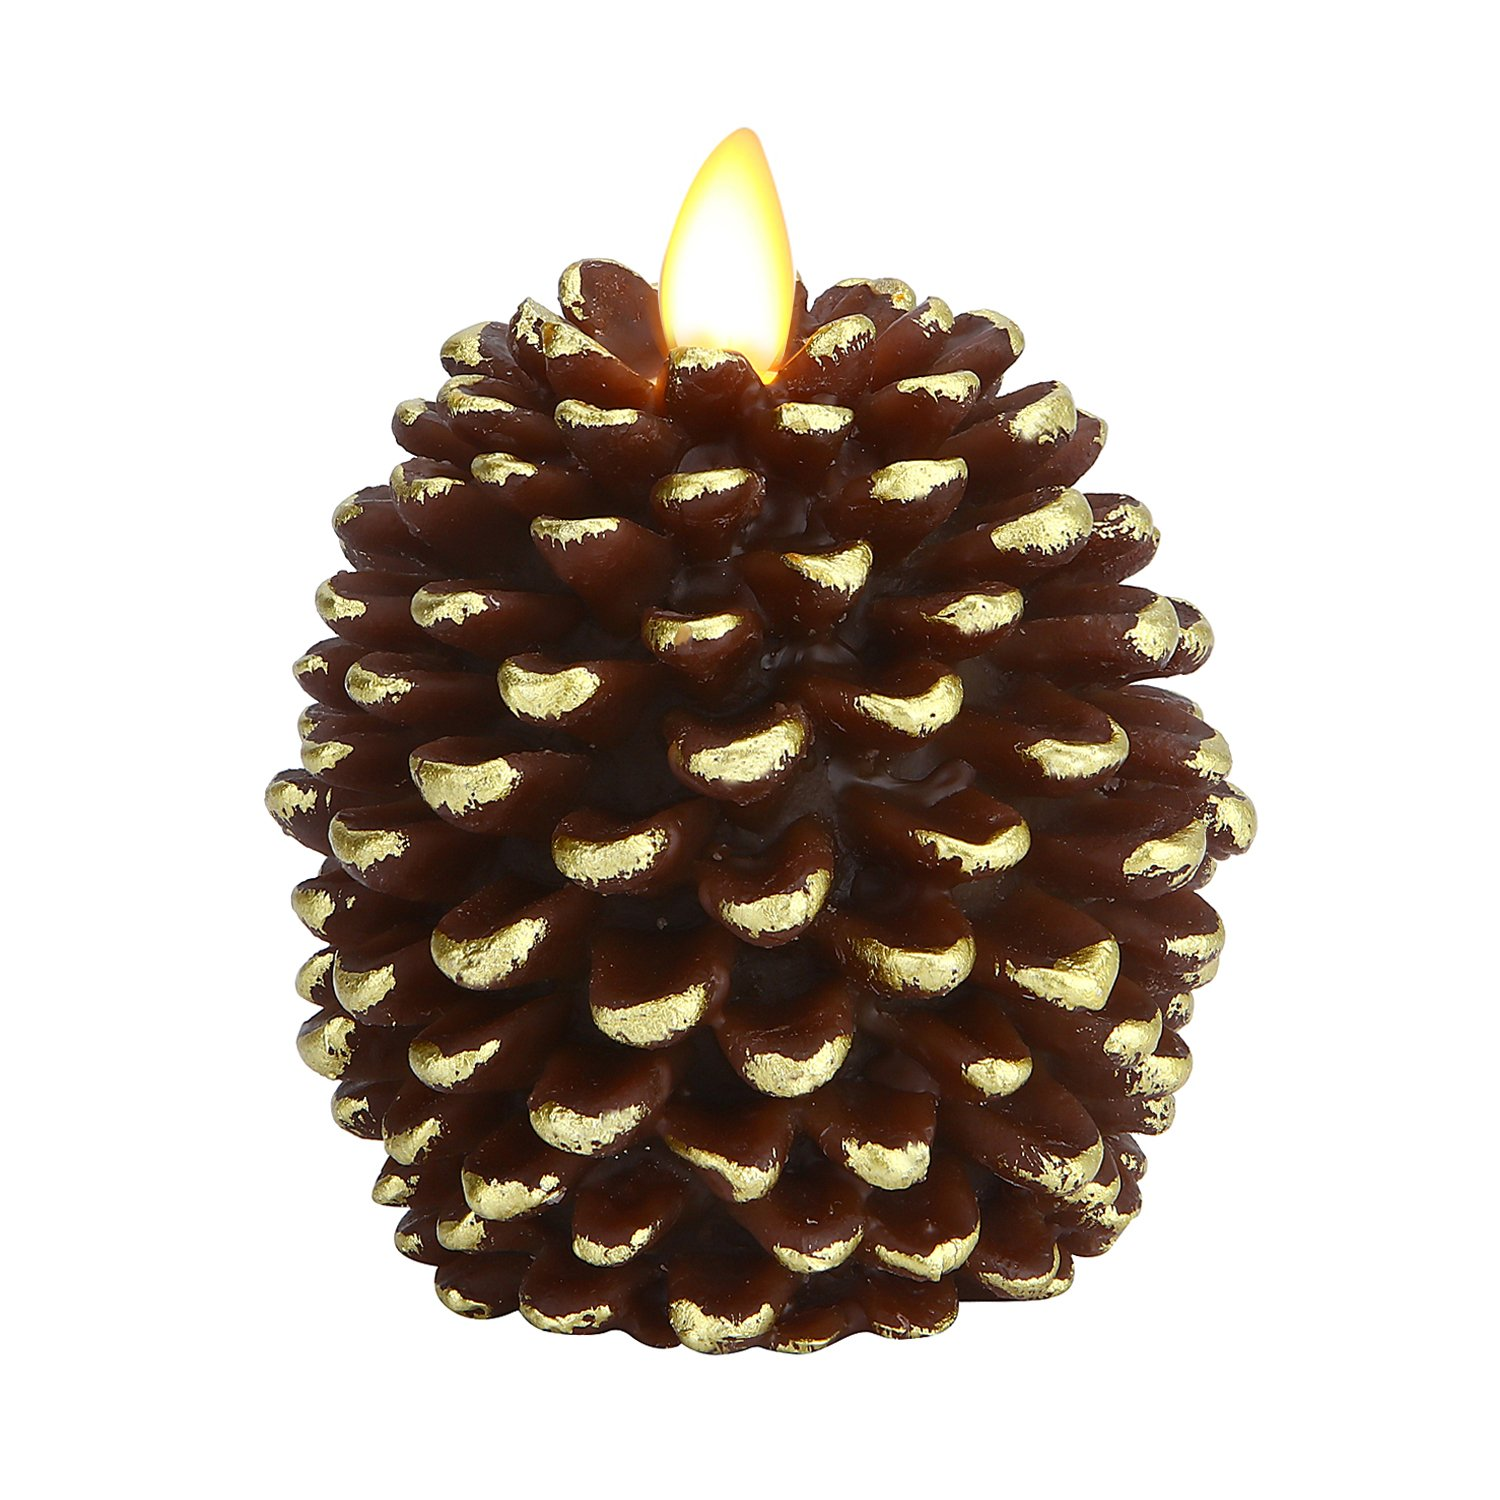 Ksperway Pinecone Unscented Wax Battery Operated Flameless Candle with Moving Wick and Timer 3.4'' x 4.1'' (Brown)